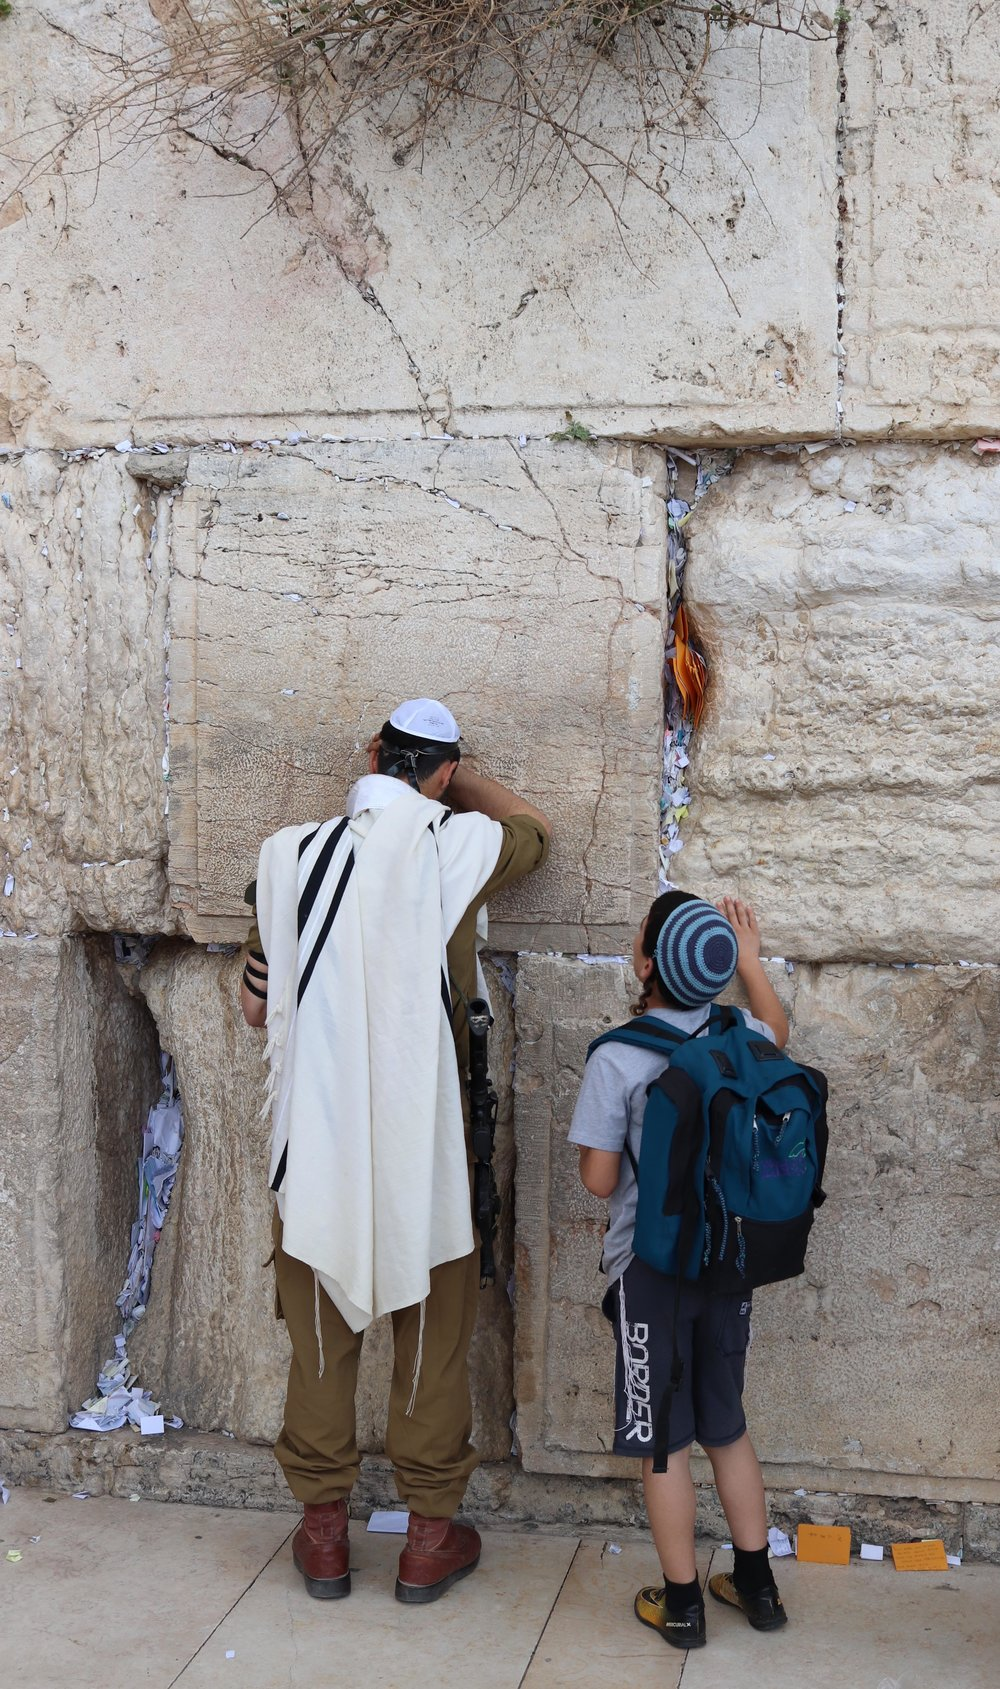 The big deal for Jews is the Western Wall, one of the walls fortifying the man-made Temple Mount. This is where Jews came for centuries to lament the loss of their temple at the top of the hill. Now, anyone can come to pray.